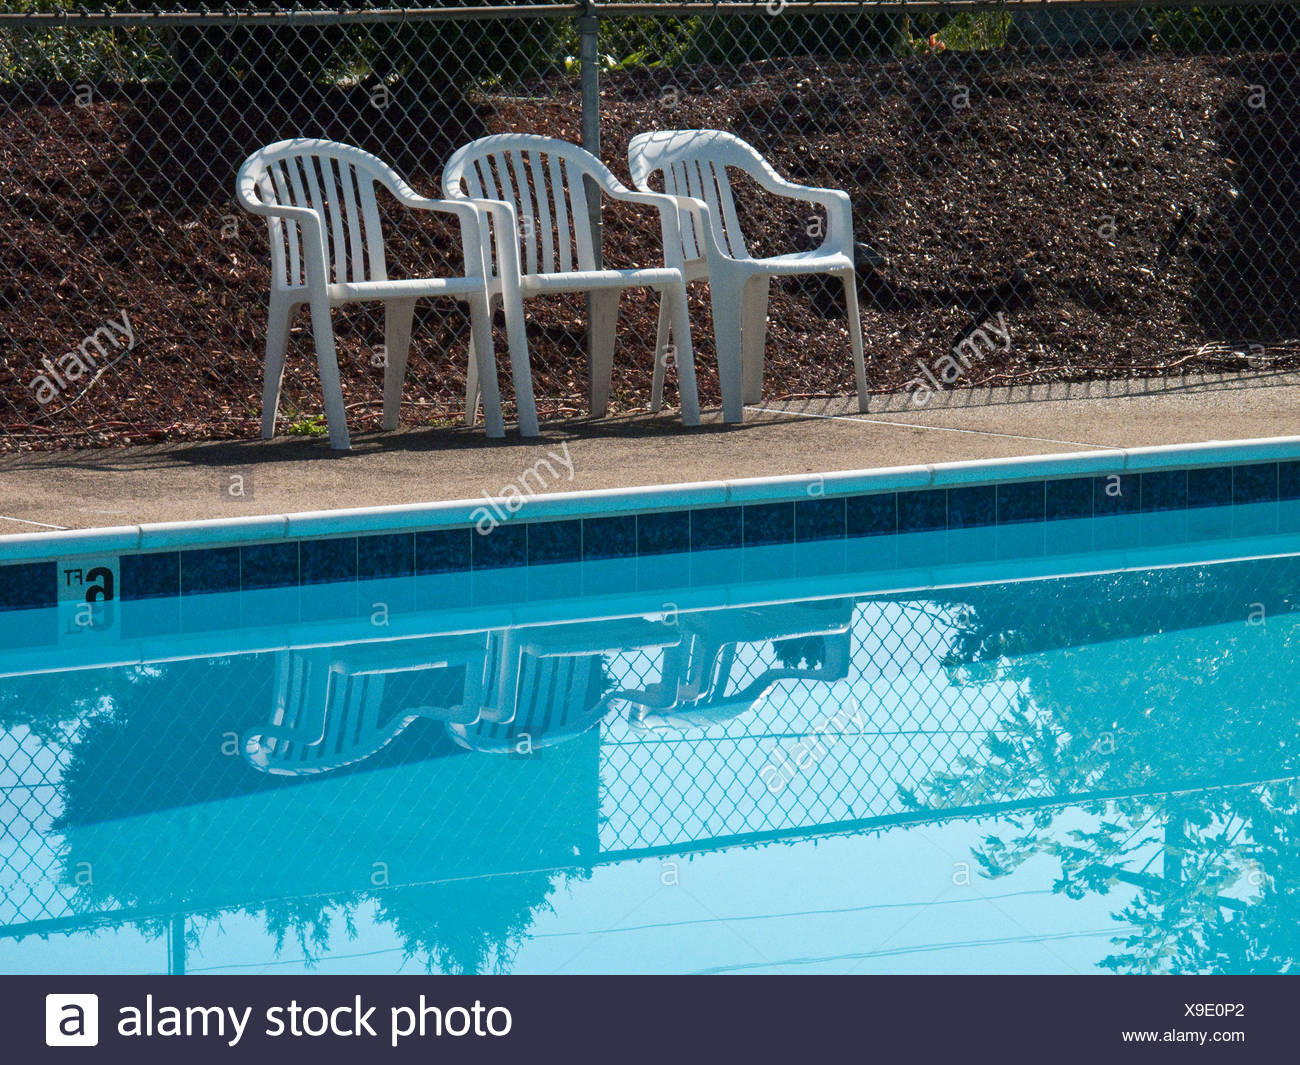 Remarkable Three Plastic Outdoors Chairs At The Edge Of A Swimming Pool Short Links Chair Design For Home Short Linksinfo